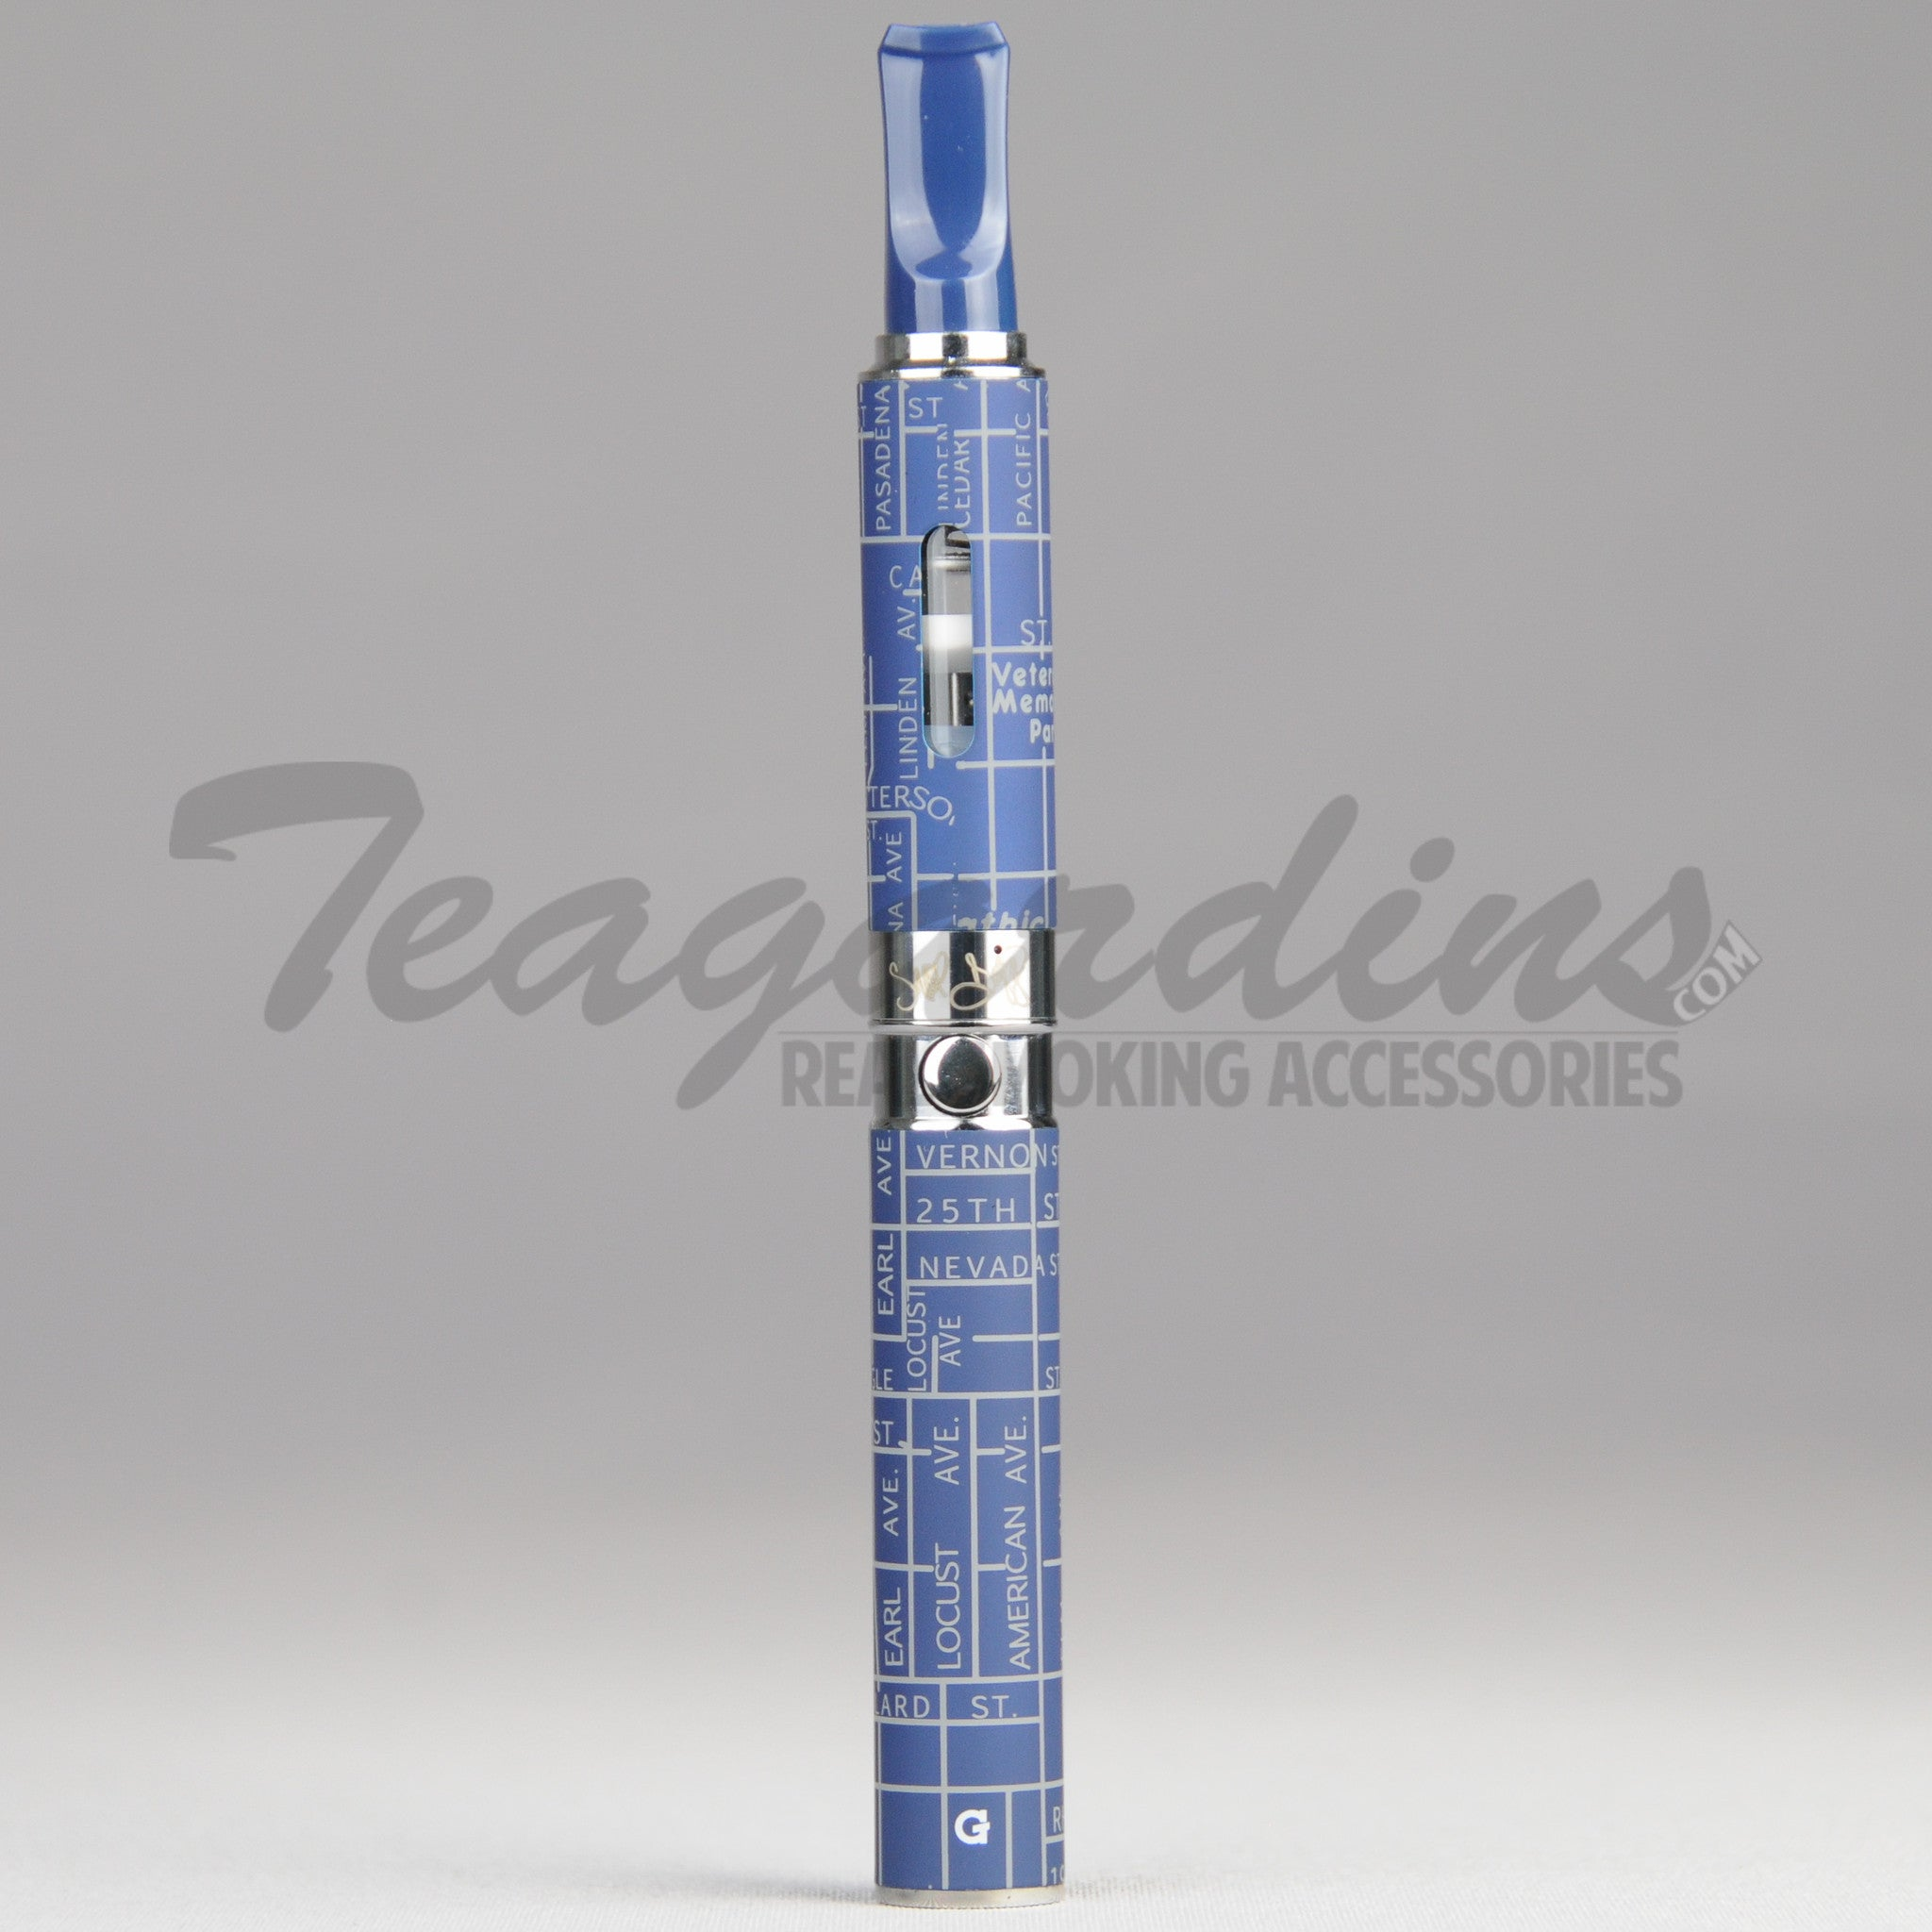 Grenco Science-Snoop Dogg G Pen Herbal Vaporizer – Teagardins